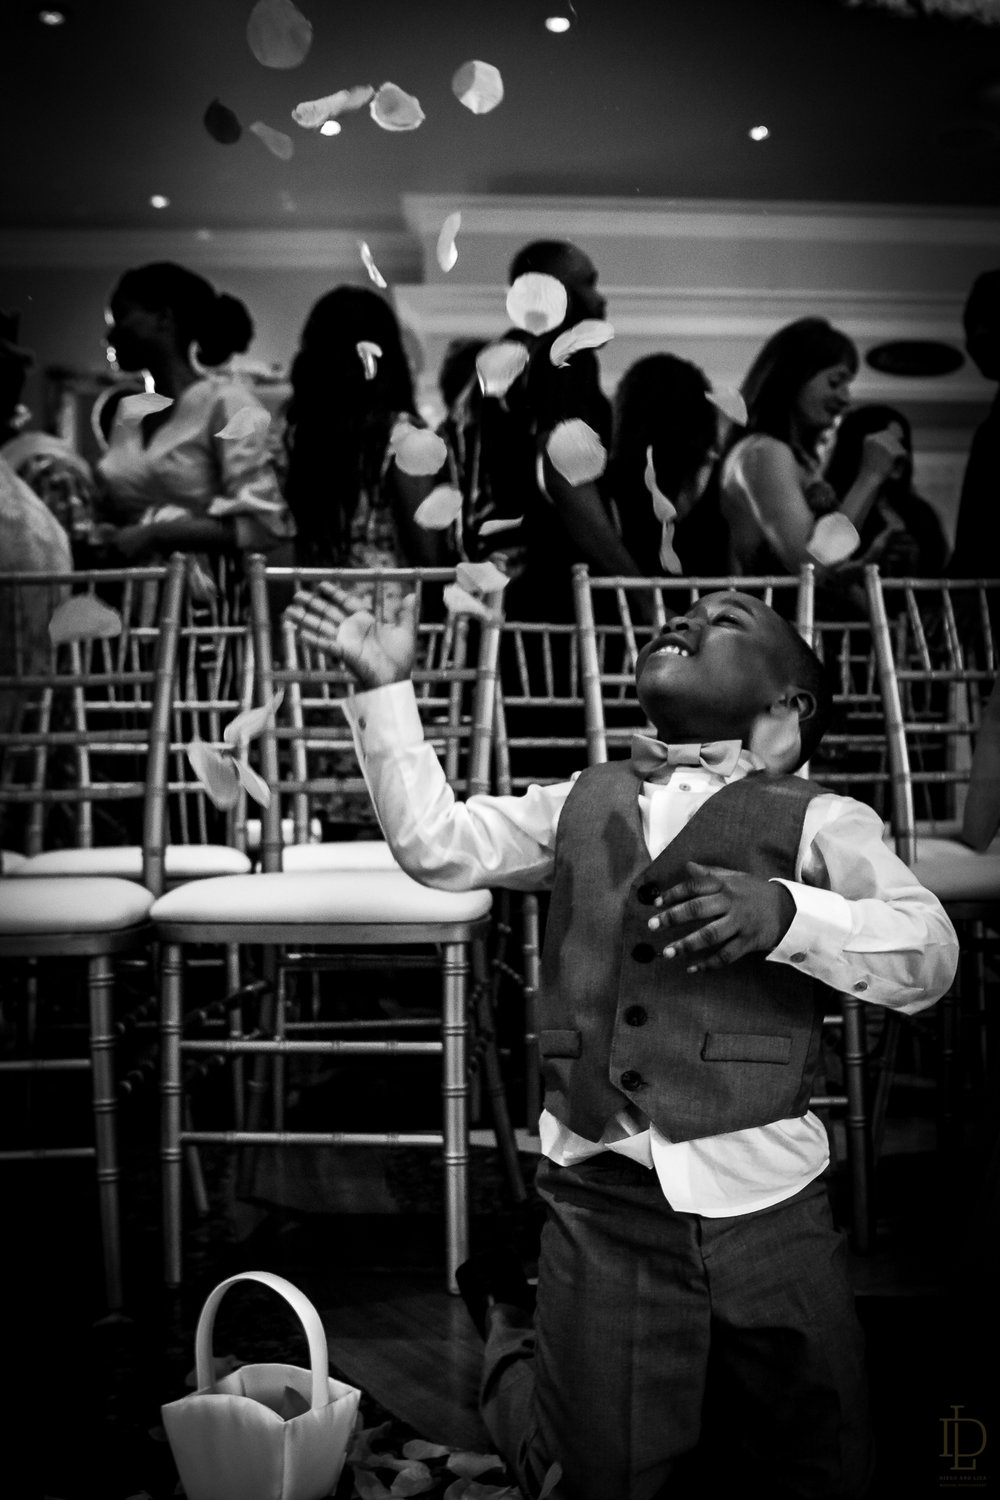 toronto-wedding-photograper-36.jpg